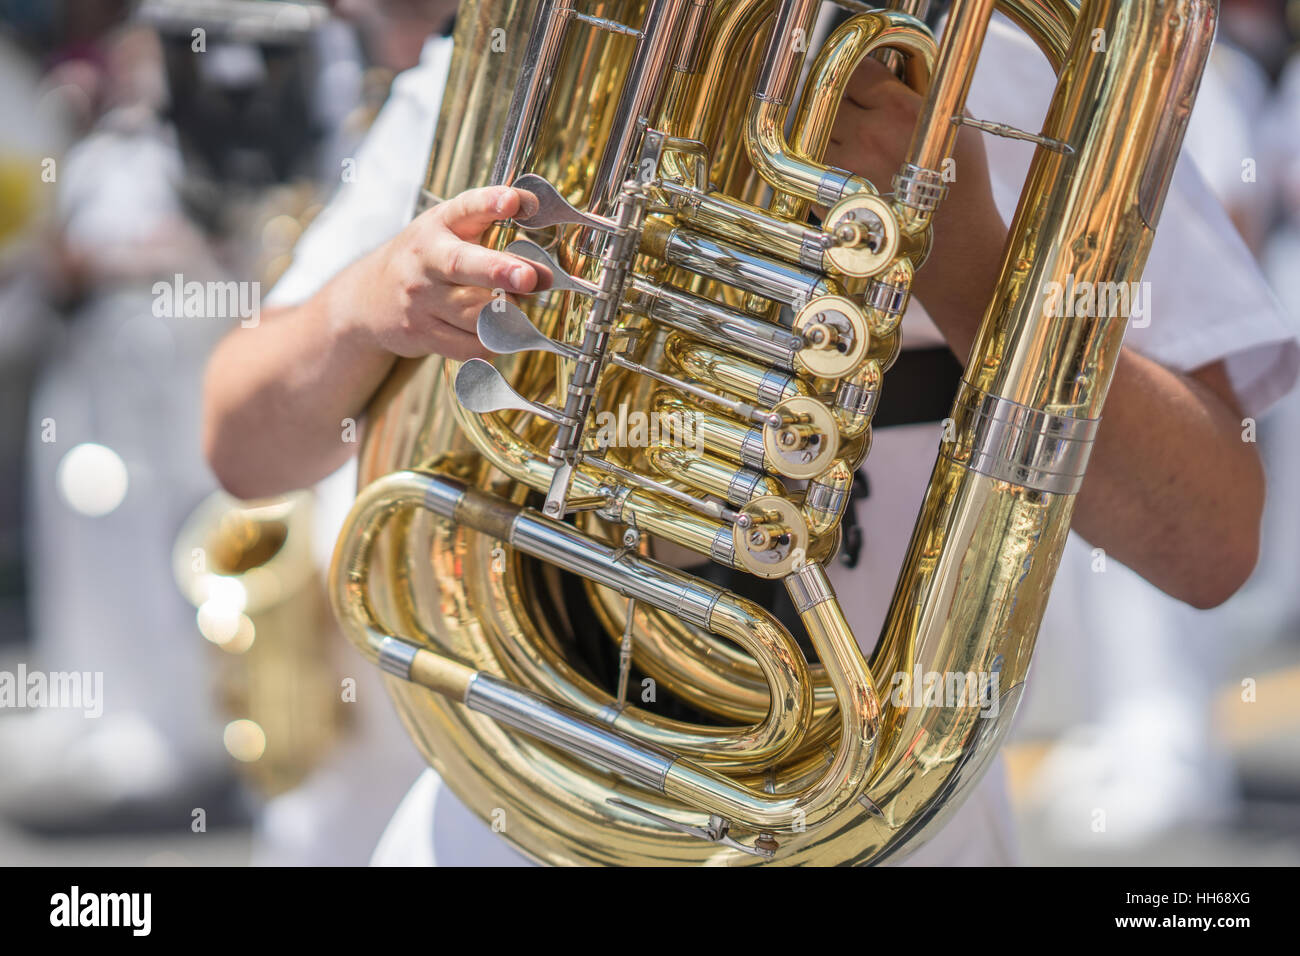 Tuba player in a military or marching band playing during a parade or festival on a sunny day. Wearing a white uniform Stock Photo